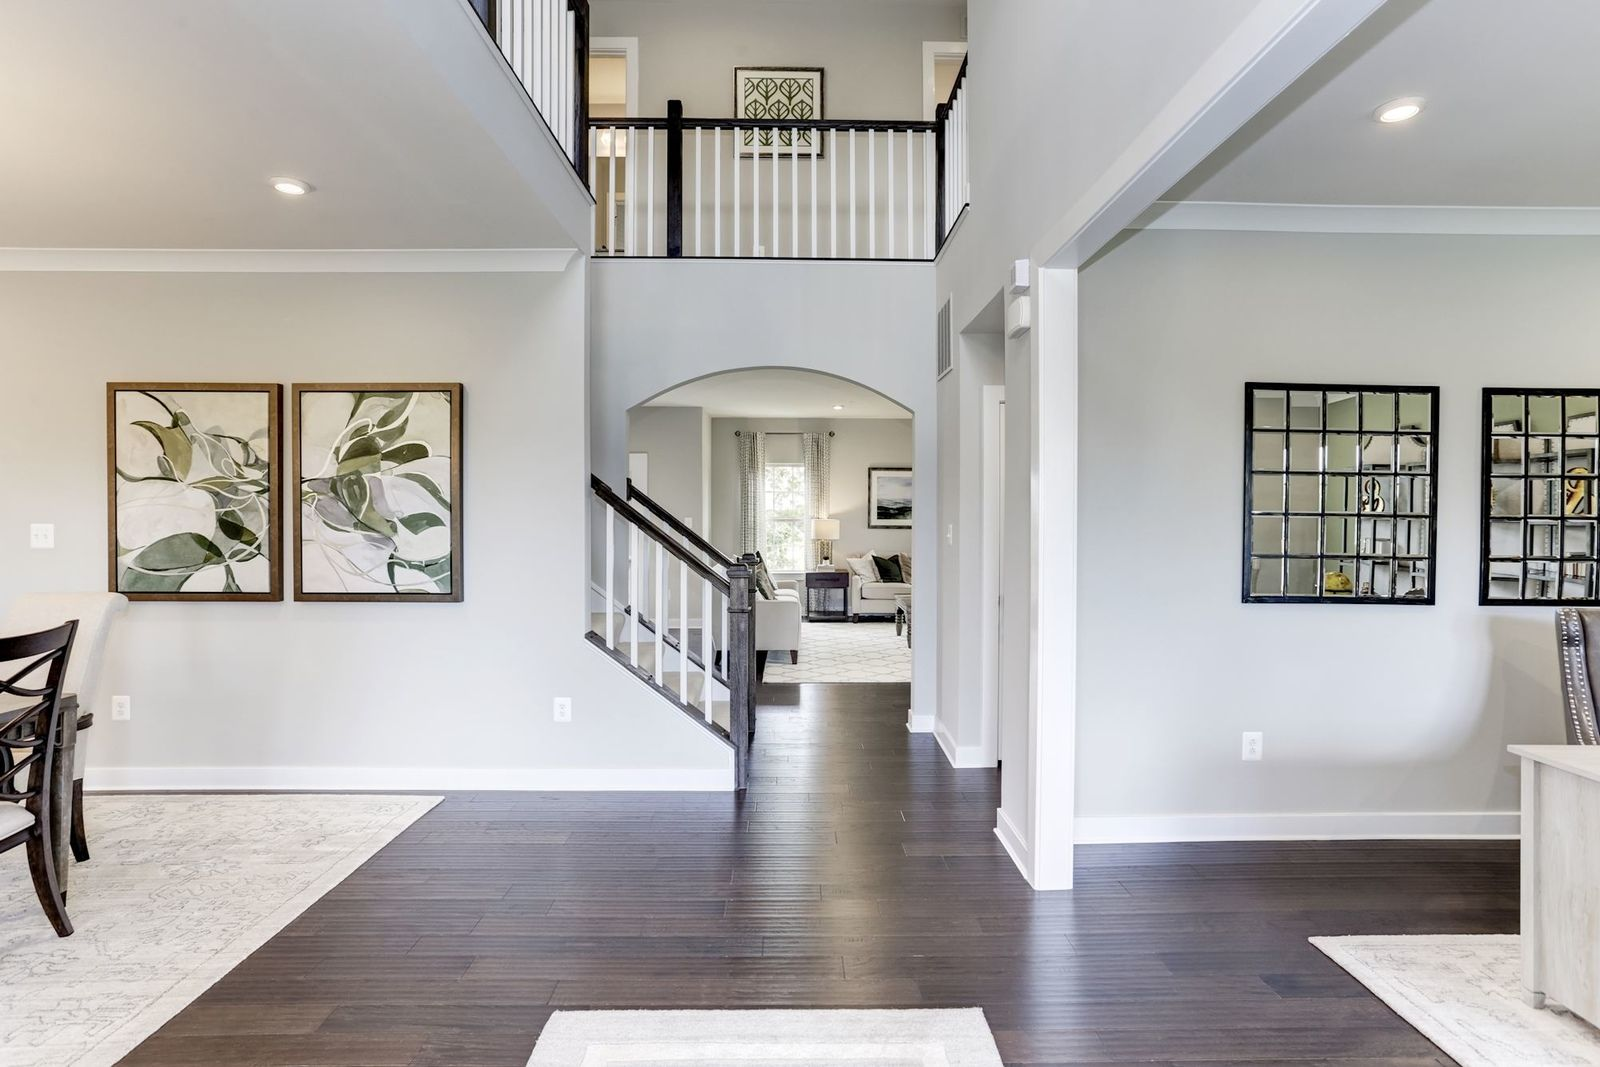 Looking for the perfect home that has it all?:Wouldn't you love this view of your 2-story foyer as soon as you walk in the door? The Corsica's free-flowing floorplan boasts 3,330 sq. ft. with 5 bedrooms, 3 baths and a loft!